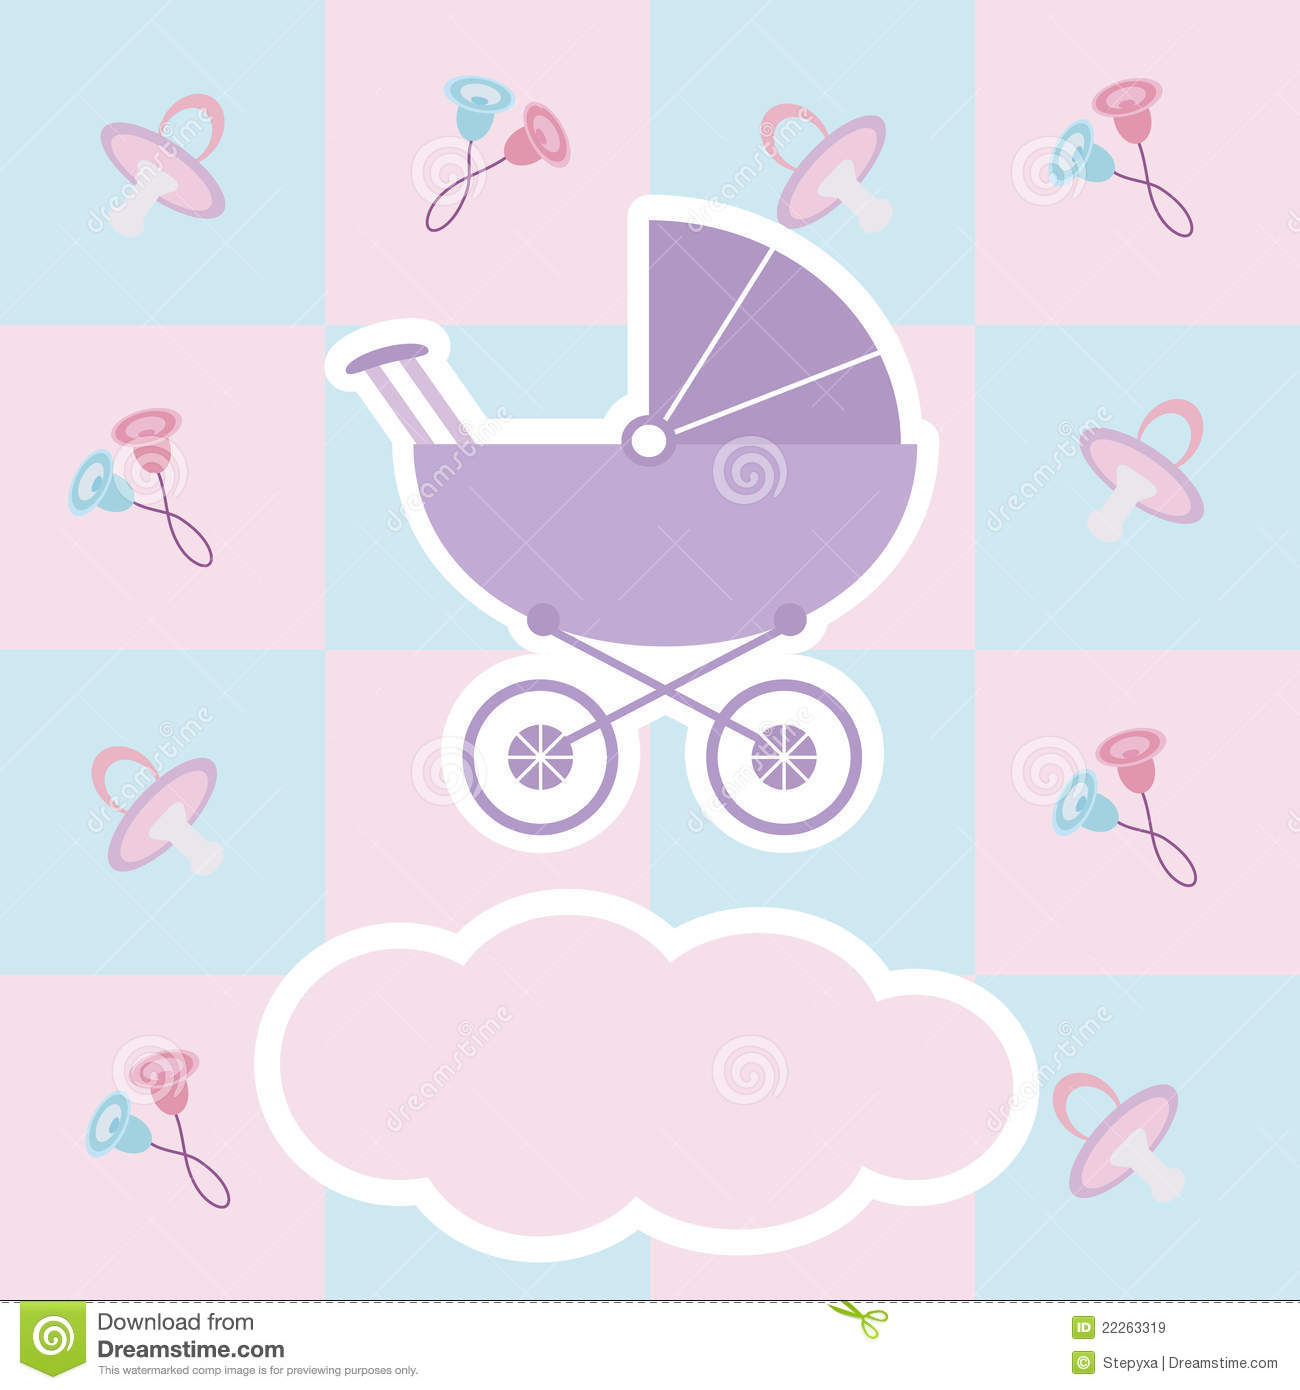 Baby Shower Card Royalty Free Stock Images - Image: 22263319